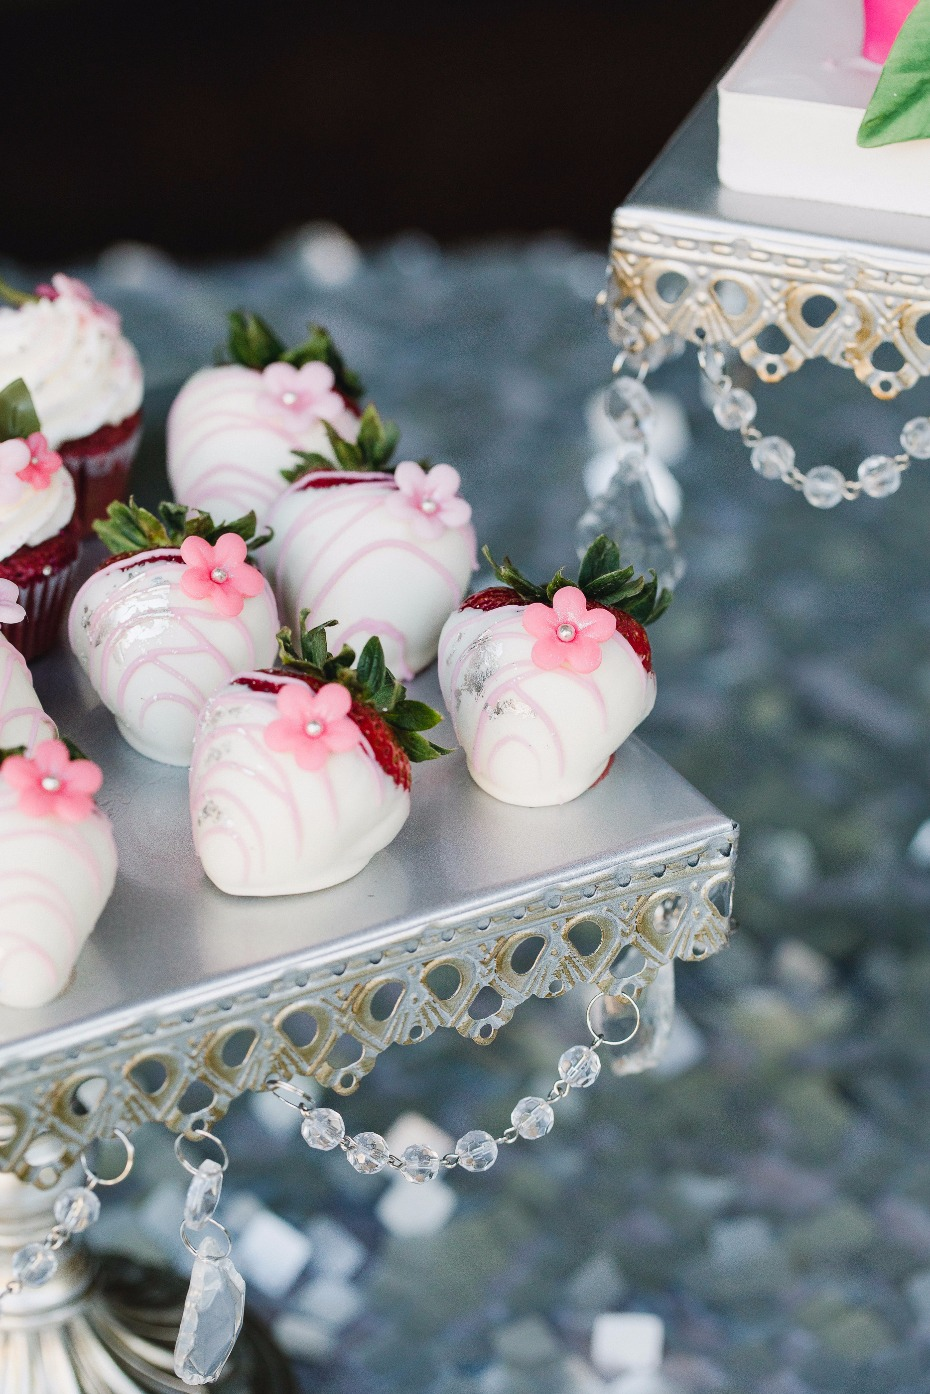 hand dipped strawberries on a vintage esque cake stand from Opulent Treasures